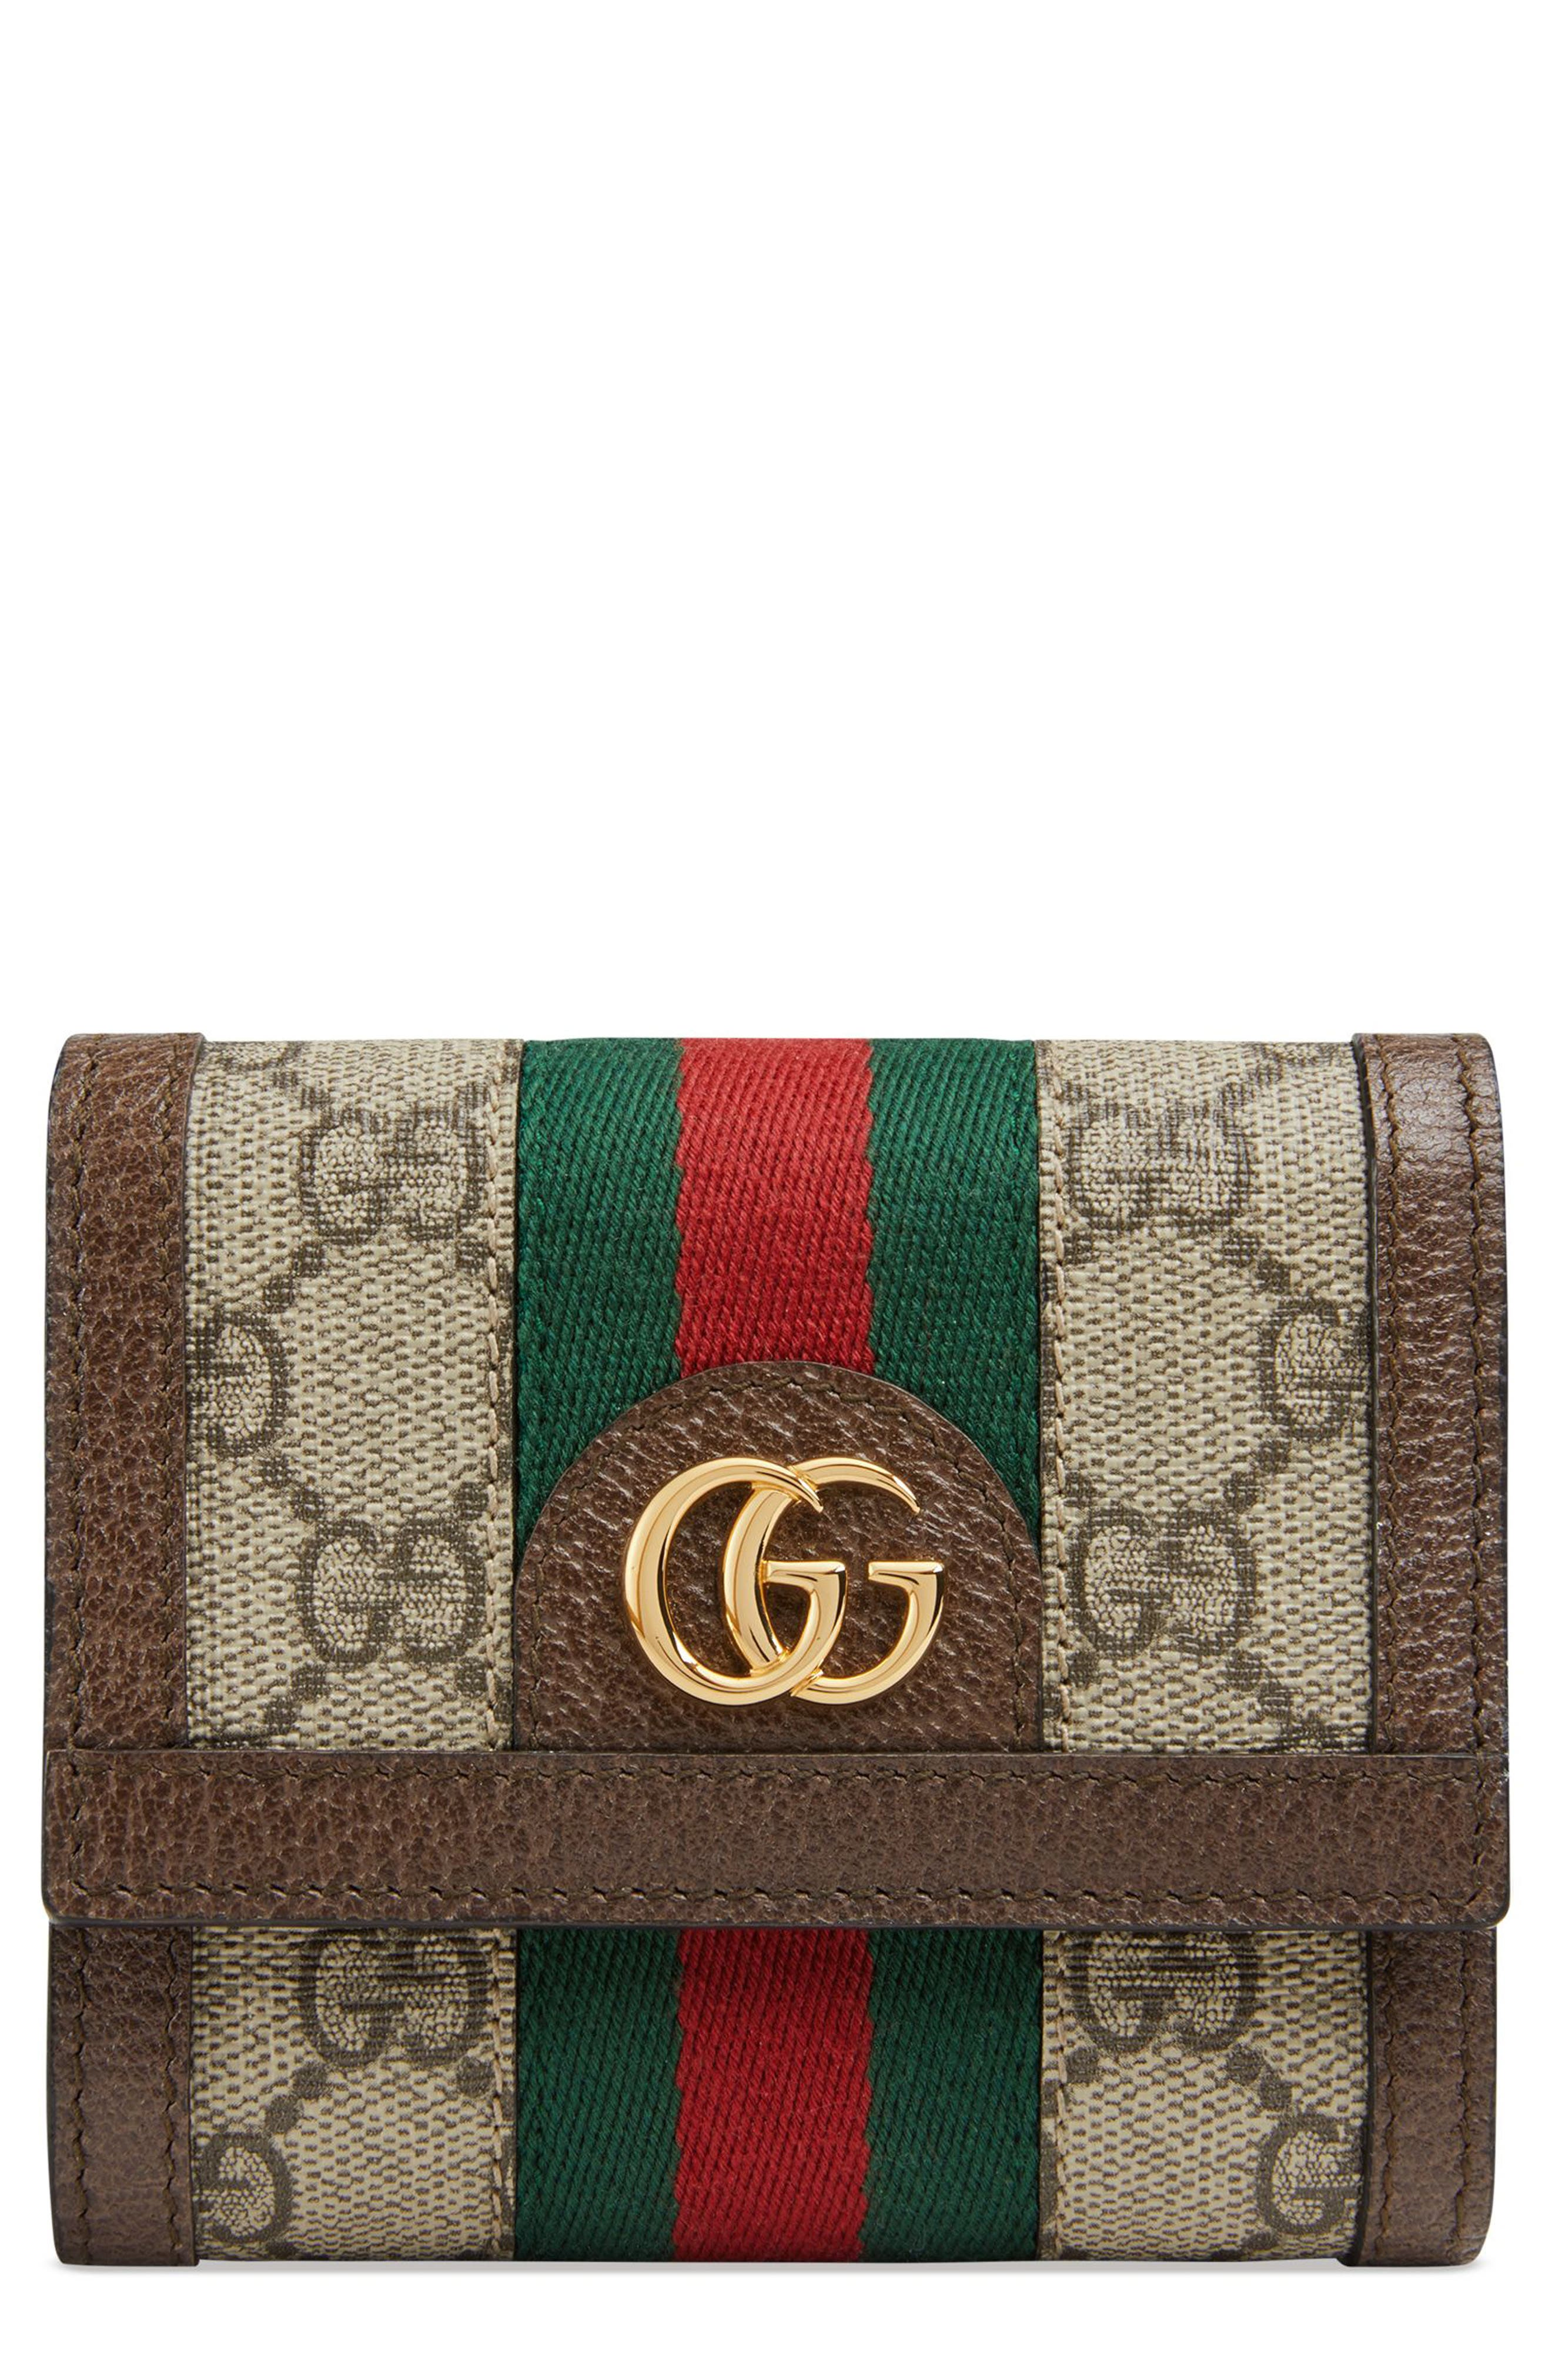 Ophidia GG Supreme French Wallet,                             Main thumbnail 1, color,                             Beige Ebony/ Acero/ Vert Red